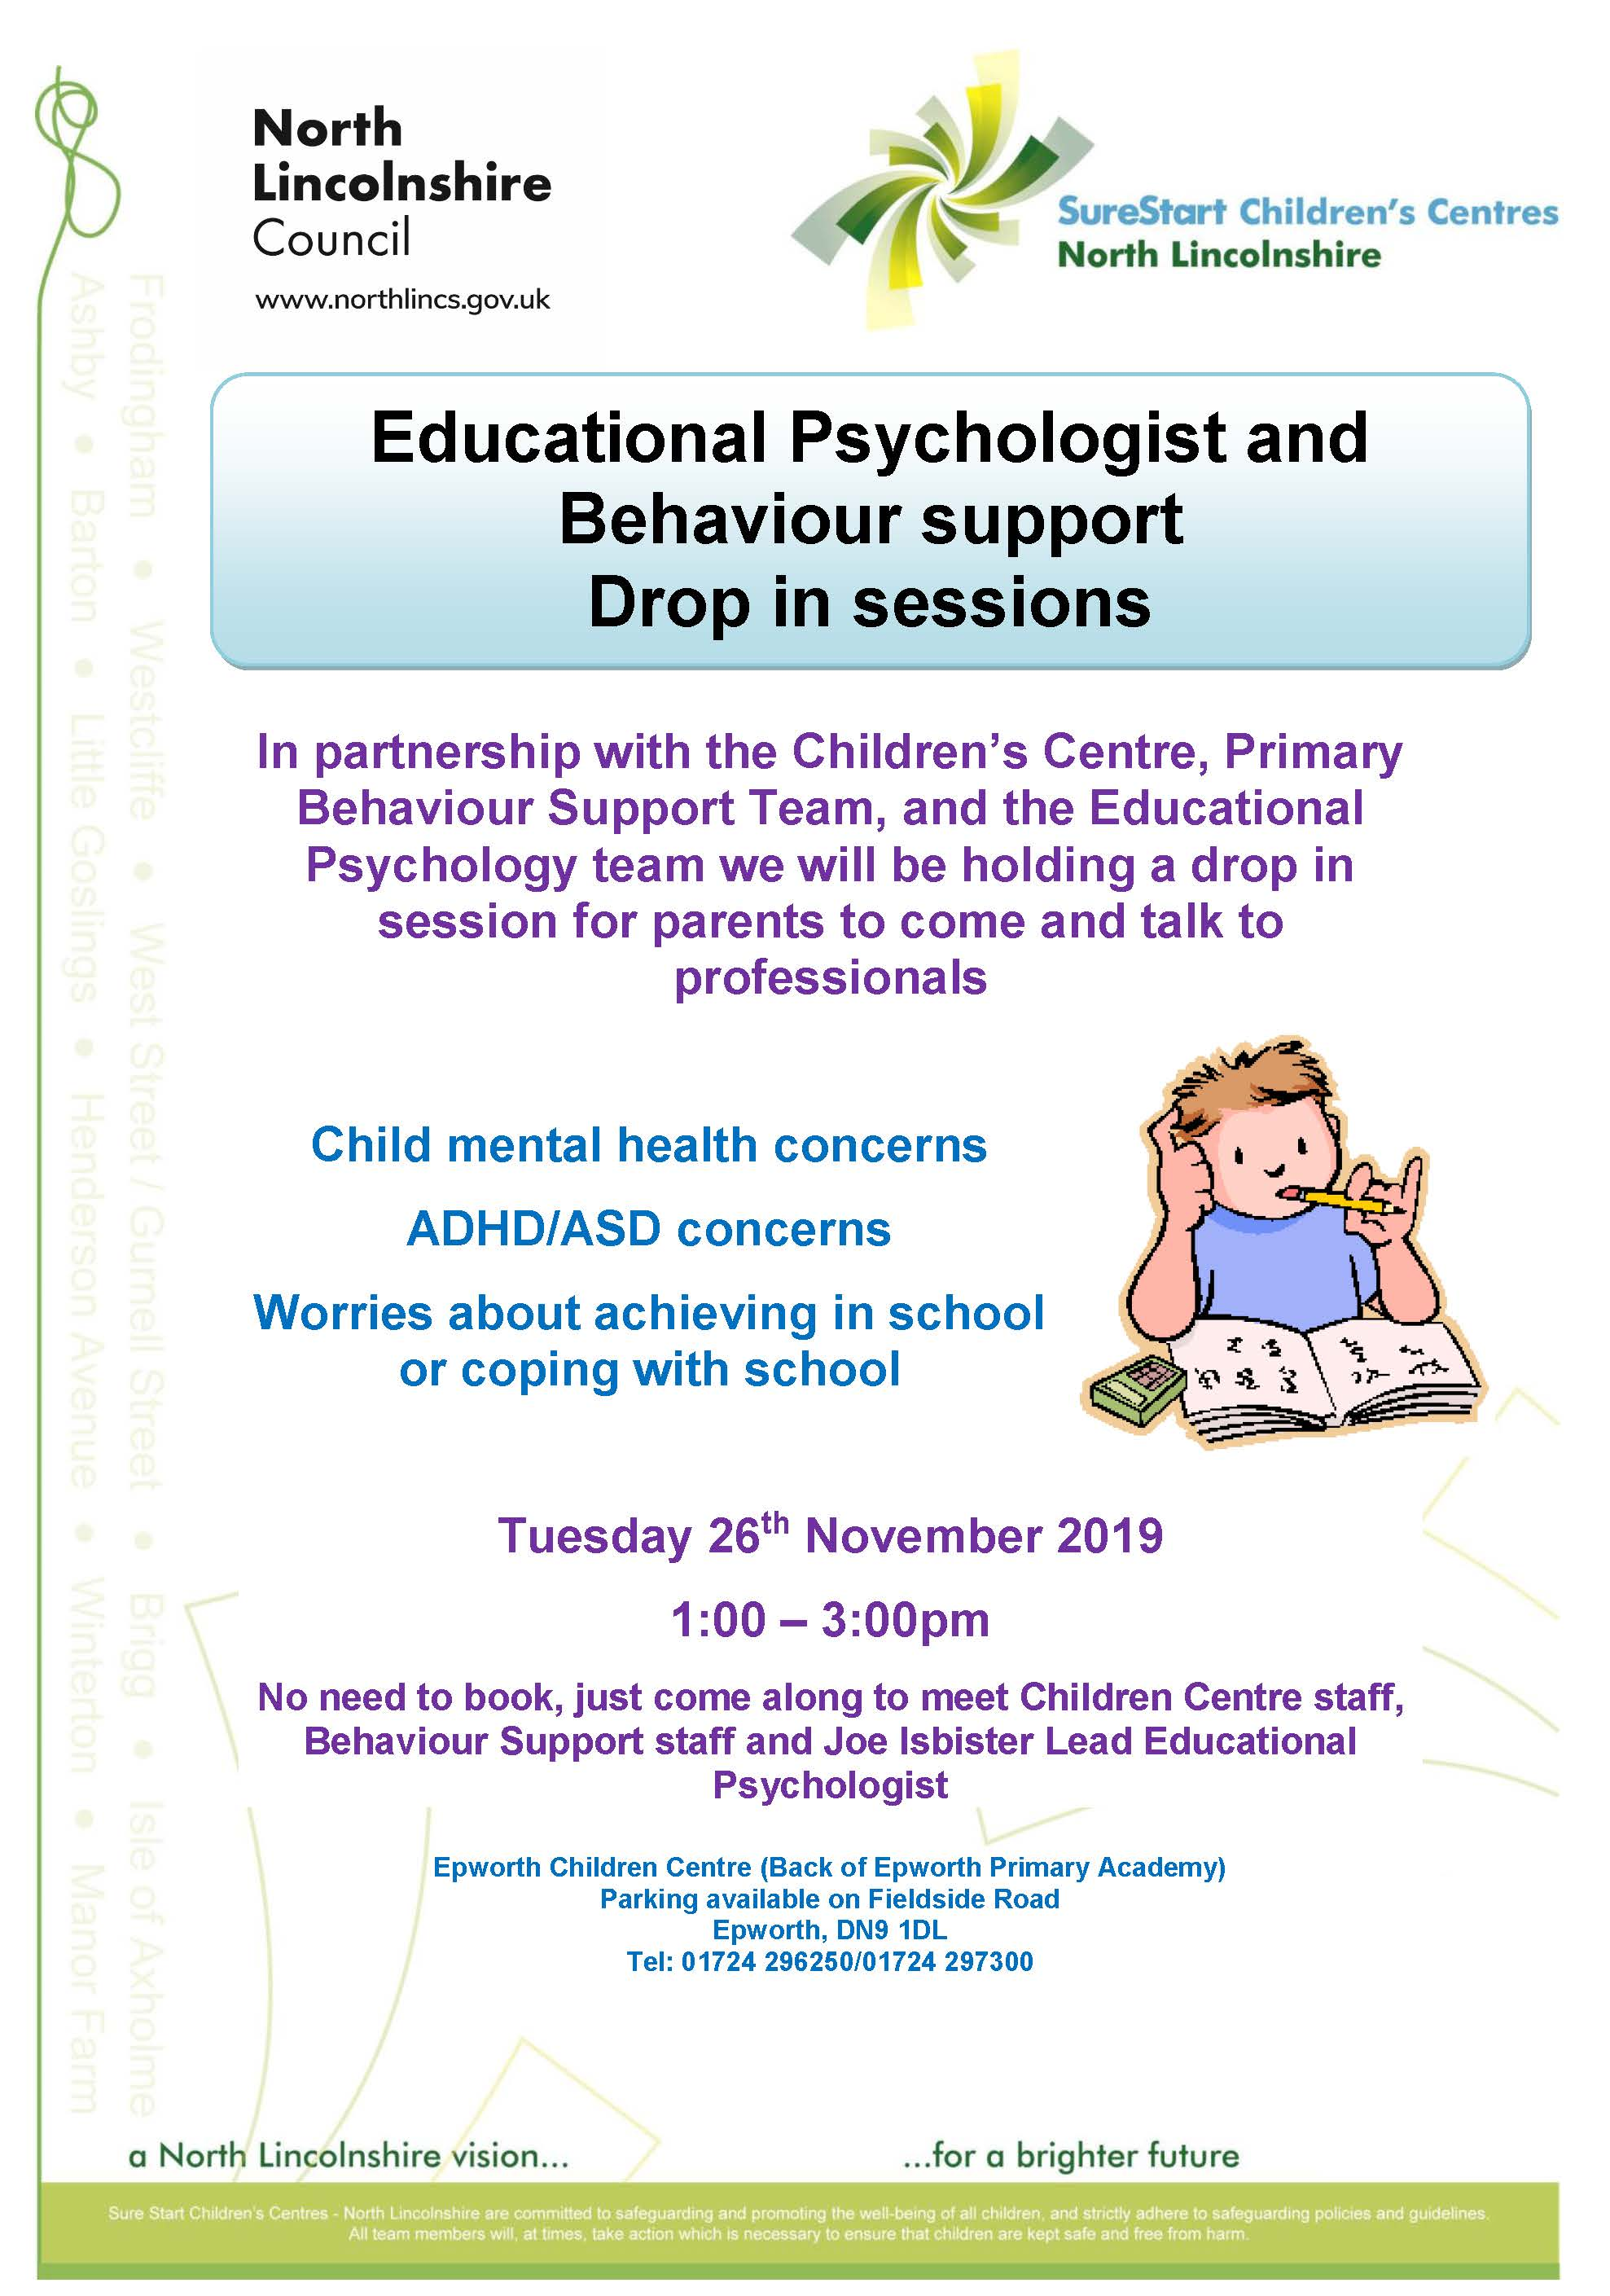 Educational Psychologist and Behaviour Support drop in session @ Epworth Children's Centre